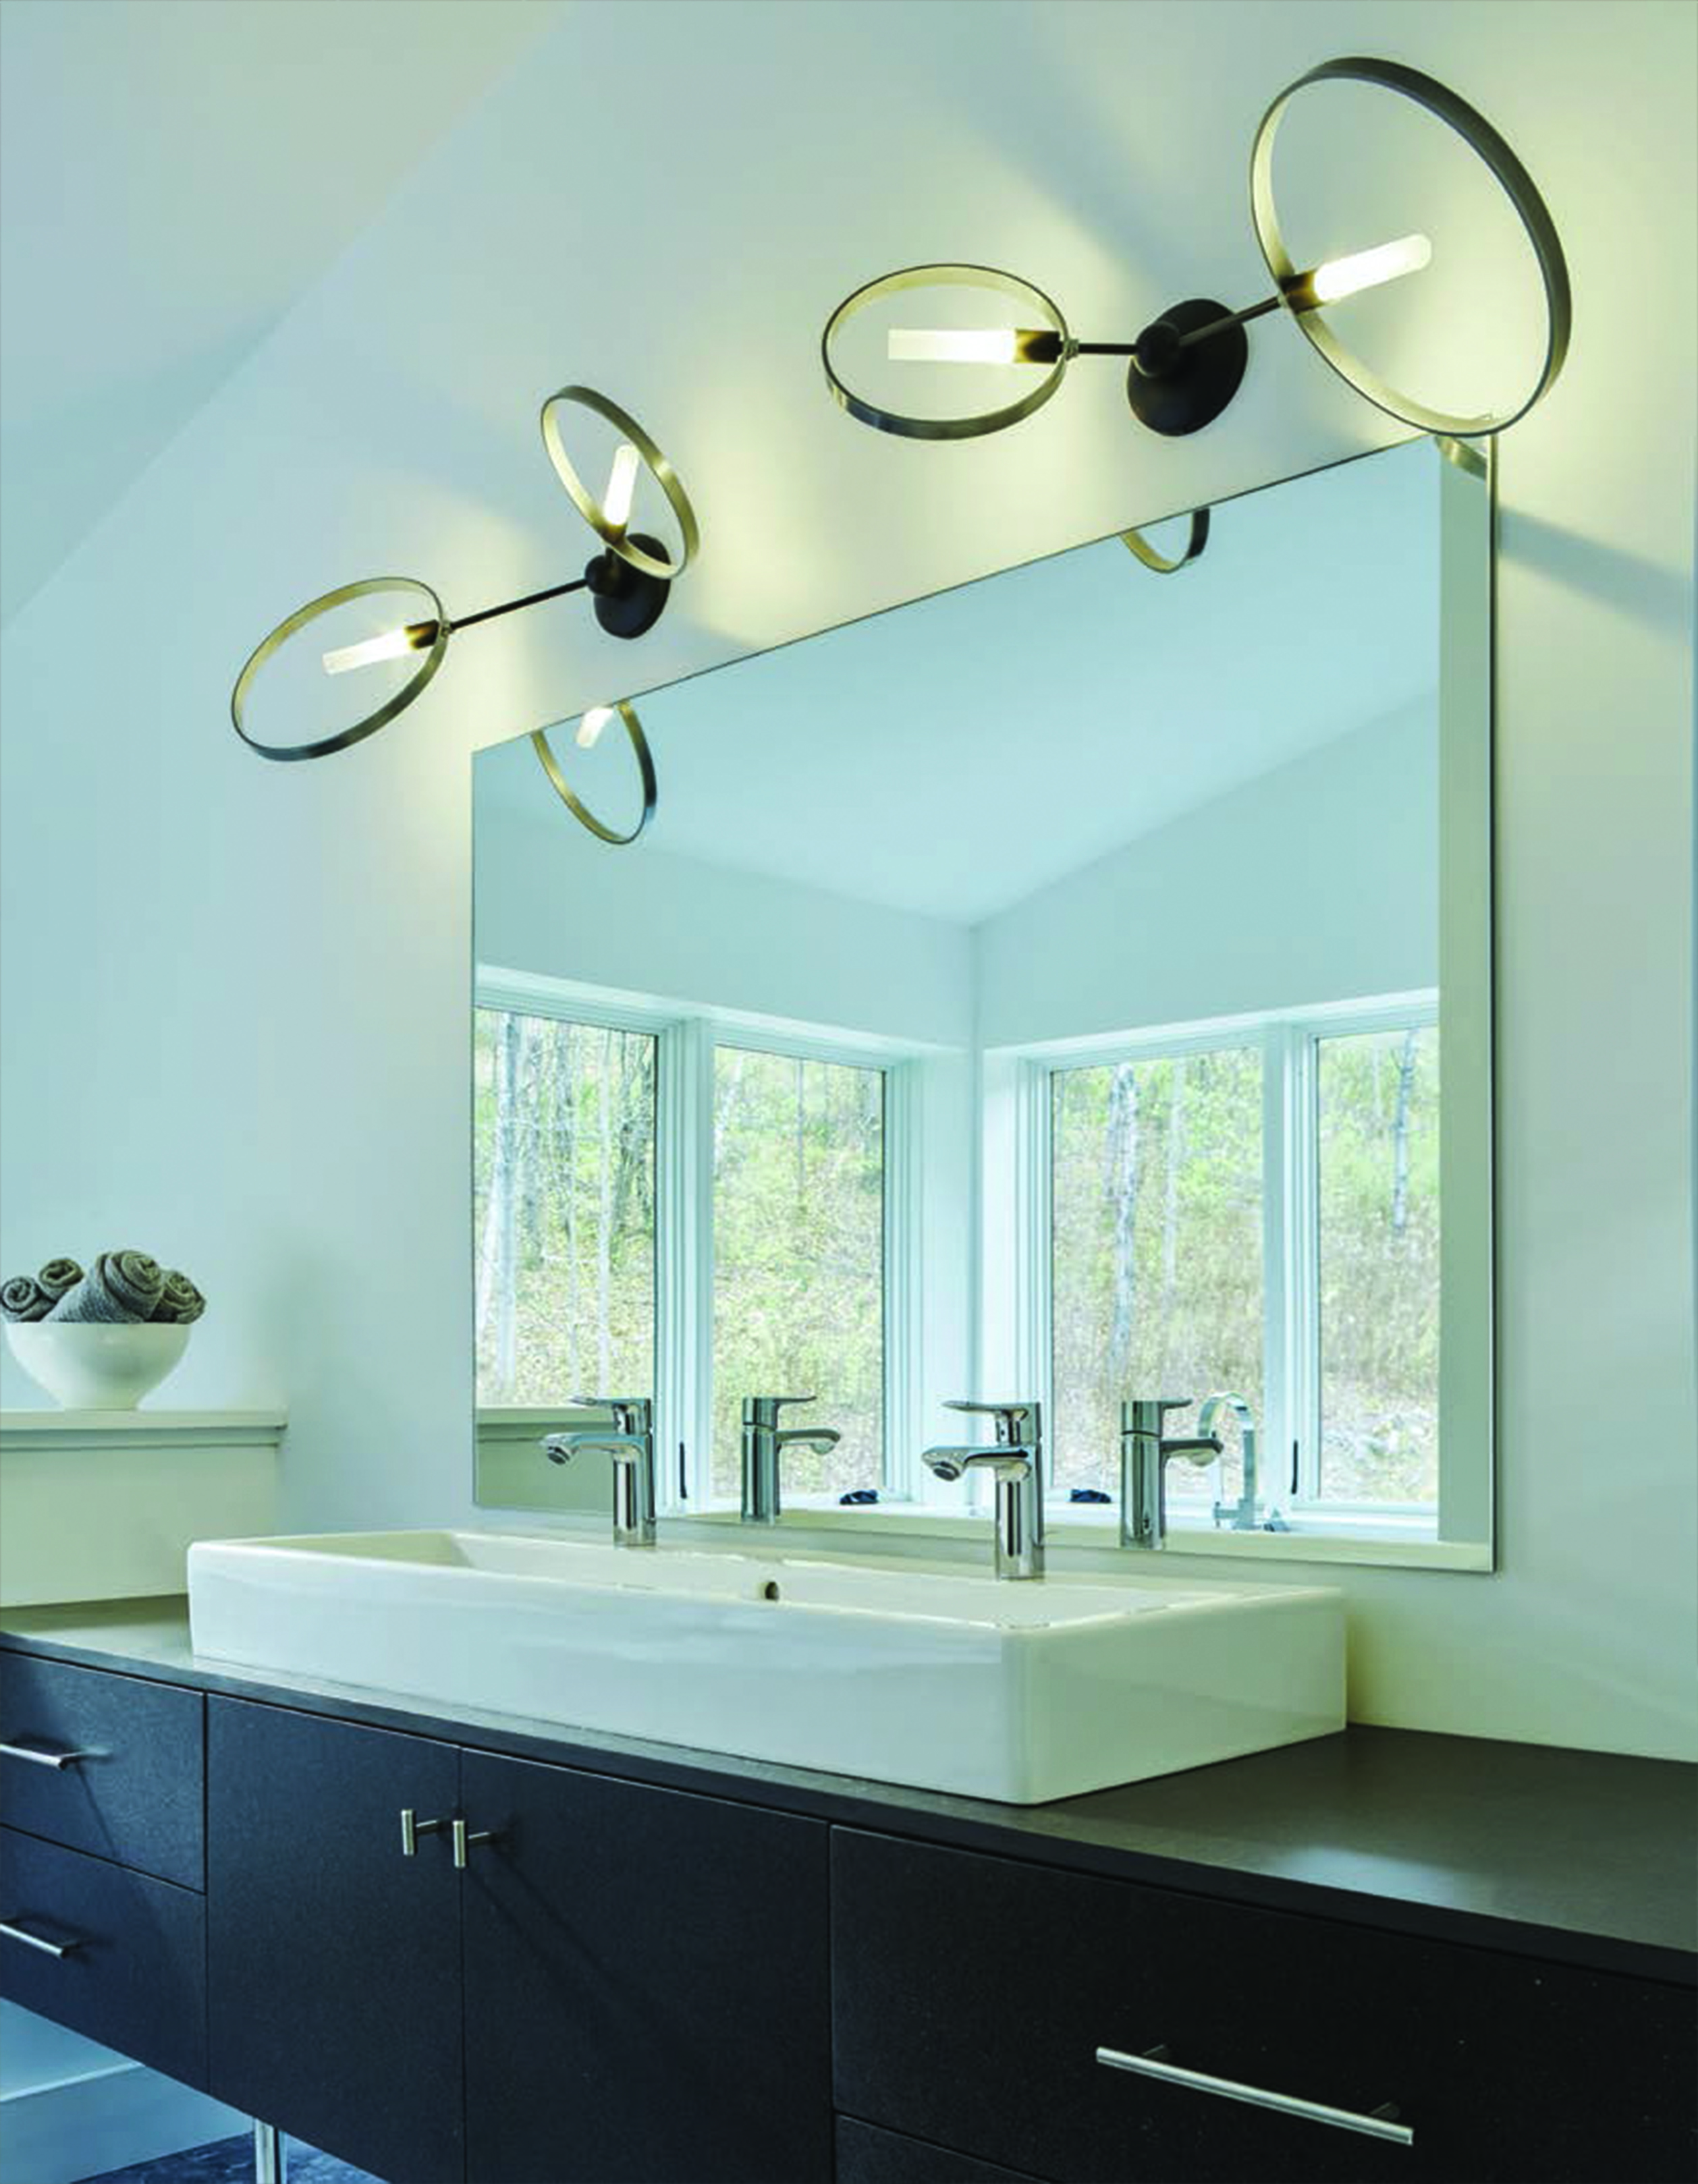 Hubbardton Forge Celesse Sconces Fogg Lighting